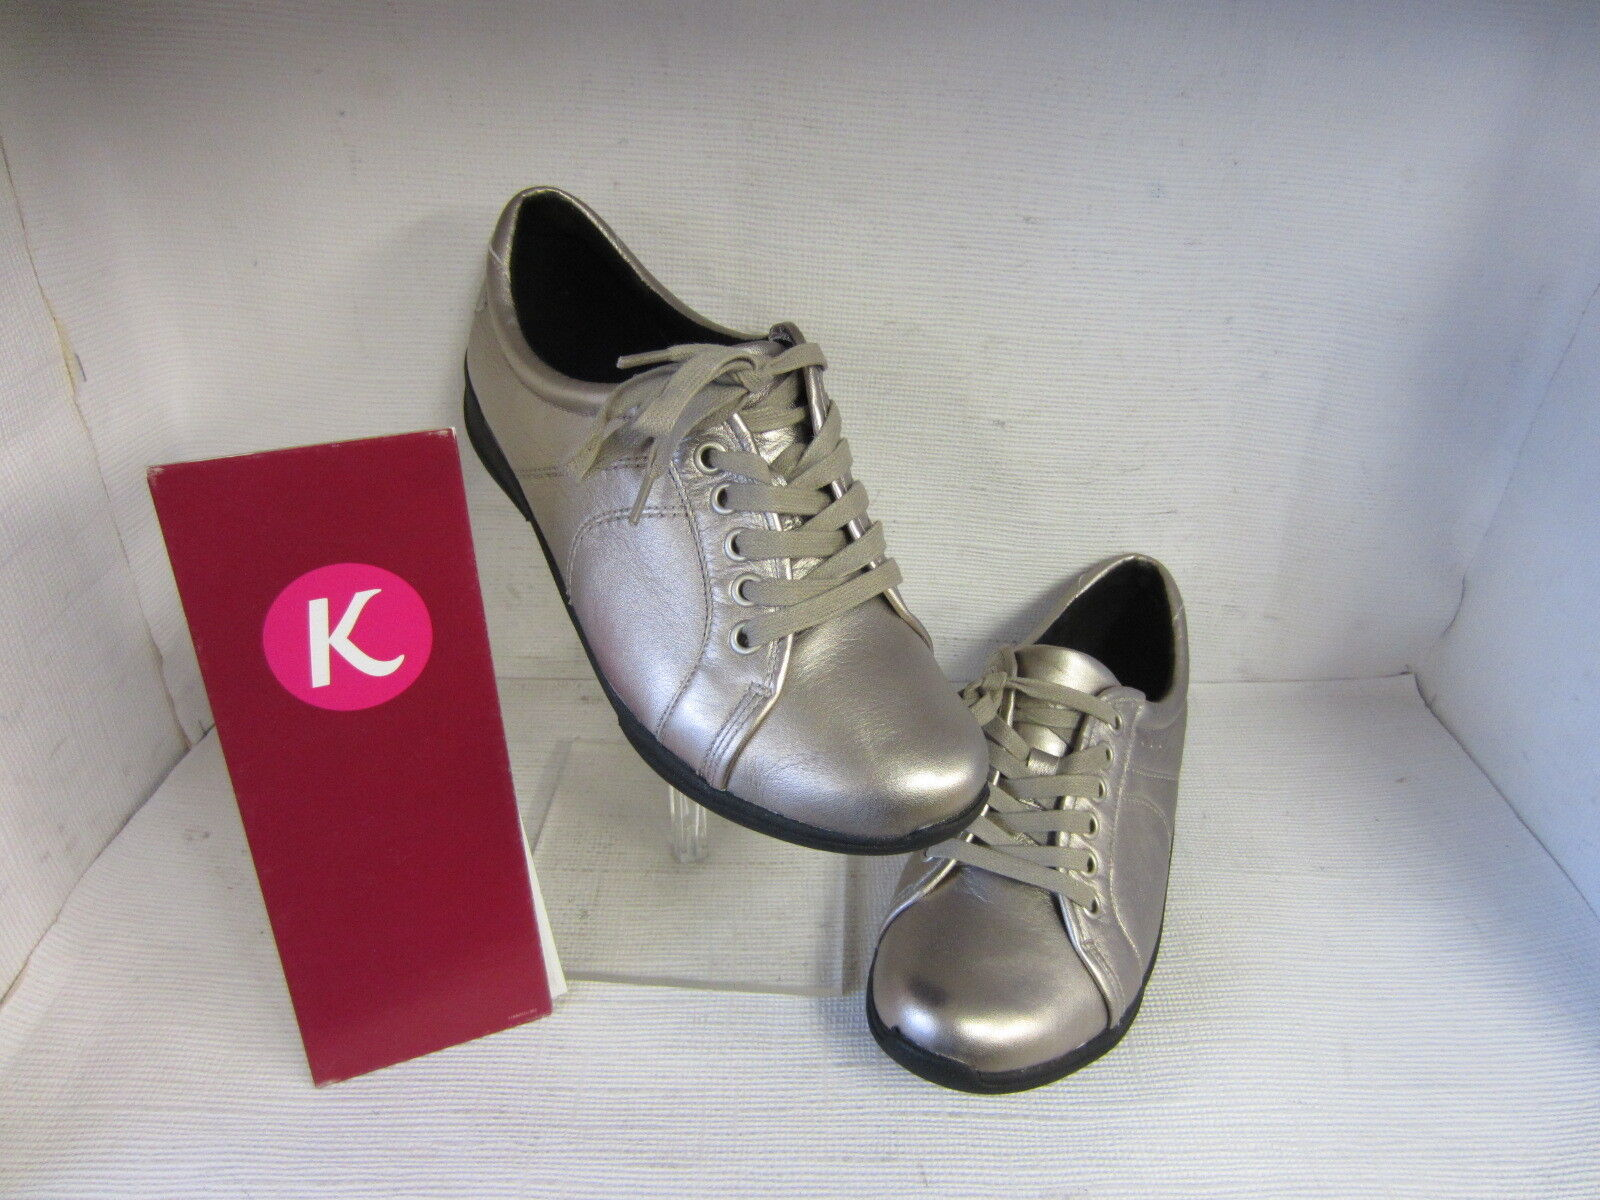 LADIES PEWTER K SHOES ETNA MUSK LACE UP PEWTER LADIES LEATHER UPPER FITTING E 81fa0d